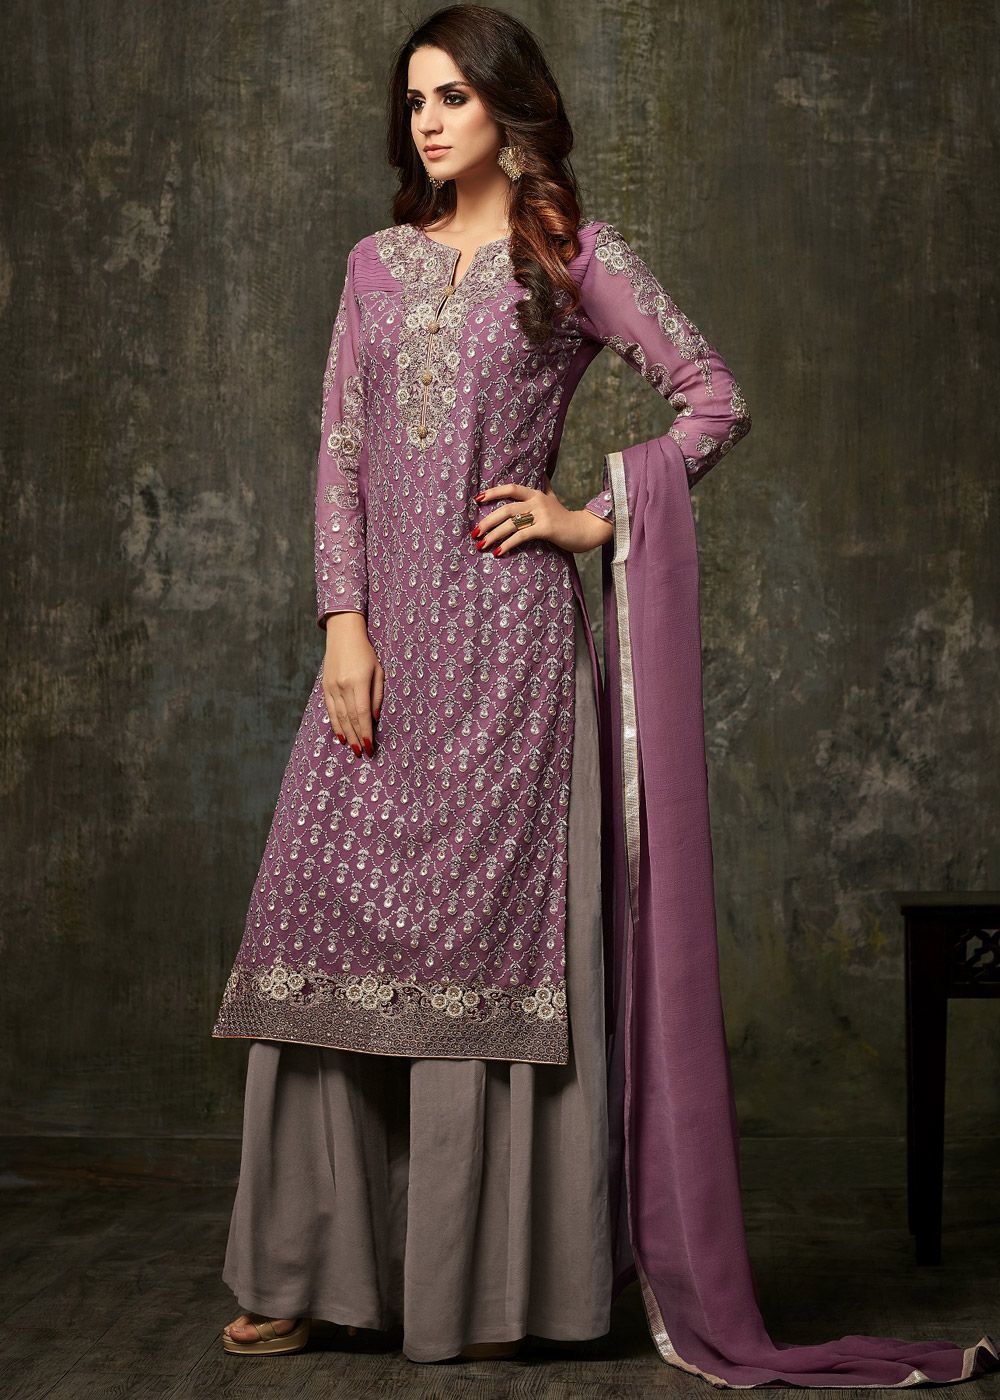 2dec4966c3 Panash Salwar Kameez - Buy Light Purple Embroidered Palazzo Suit with  Dupatta online, Work: